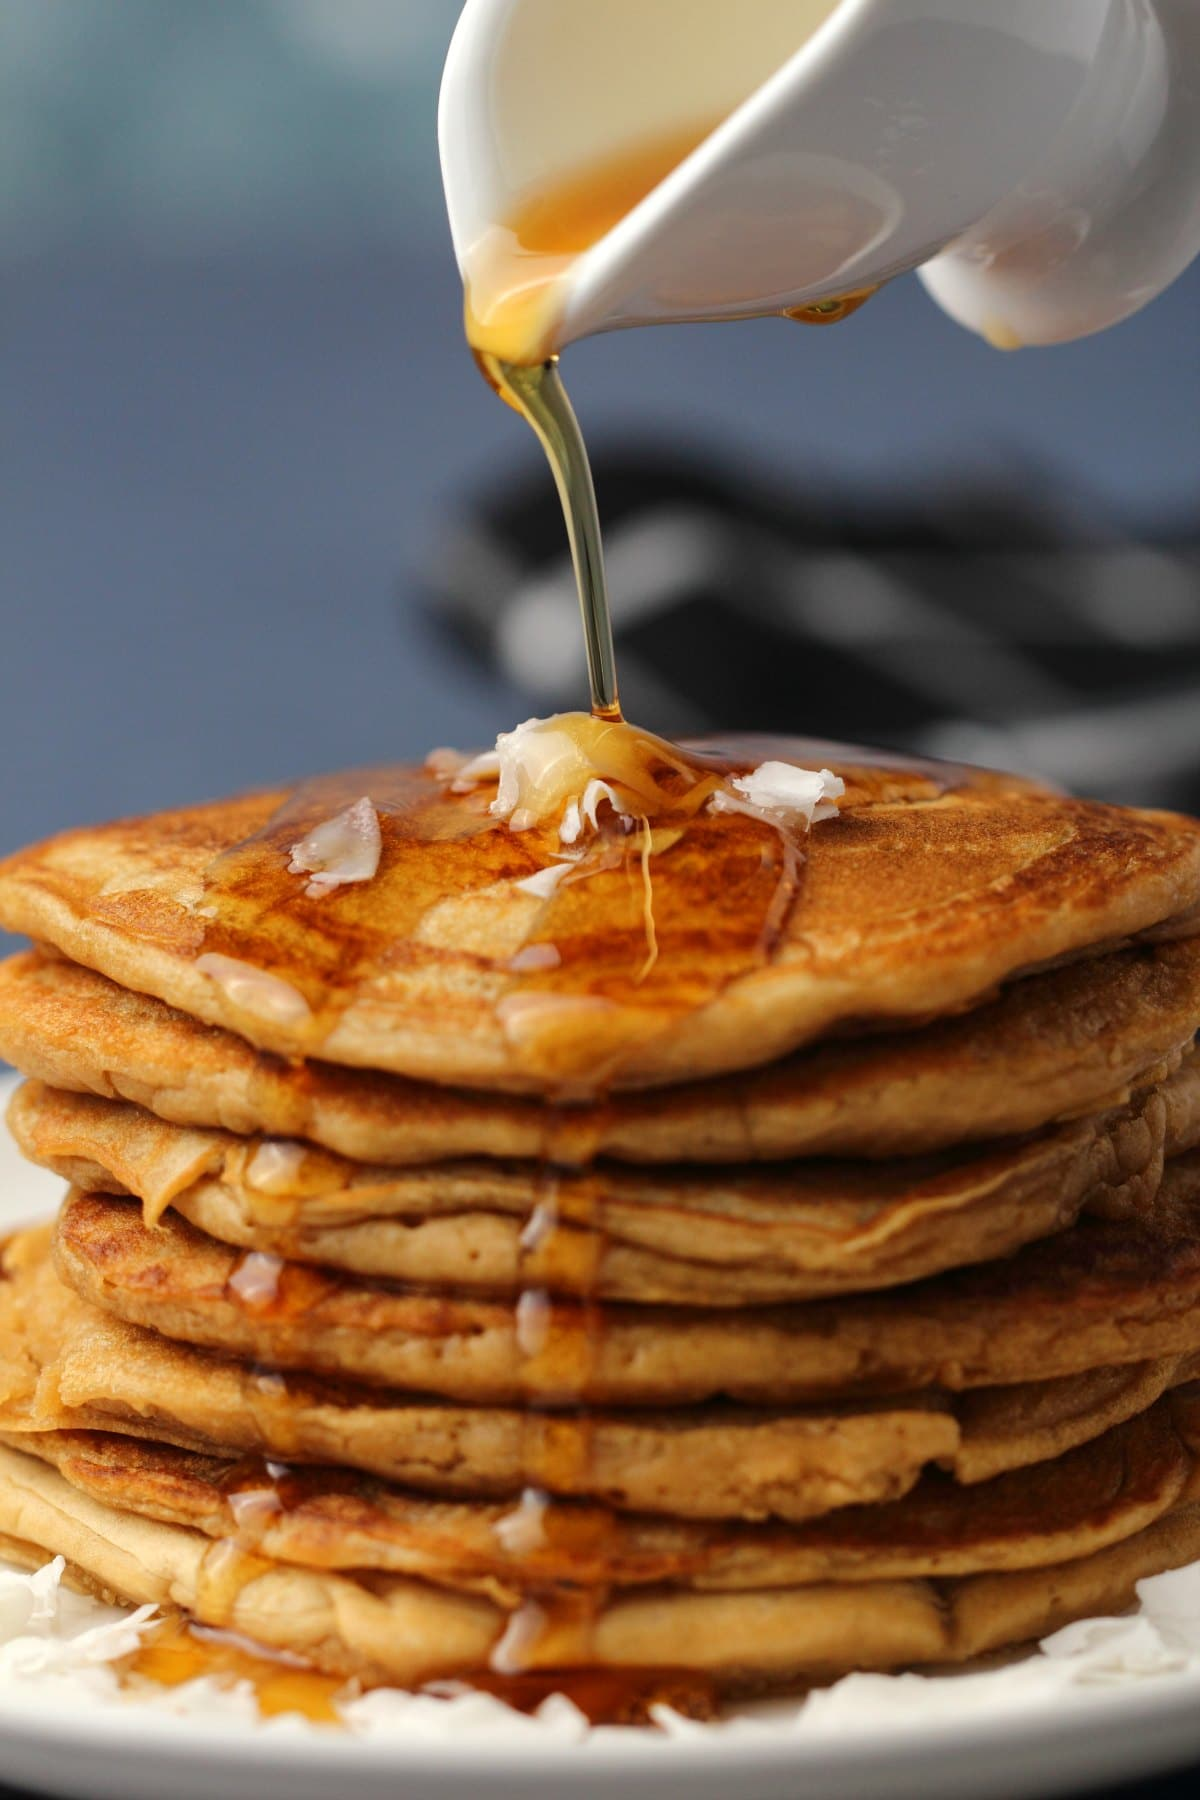 Syrup pouring over a stack of vegan coconut pancakes.